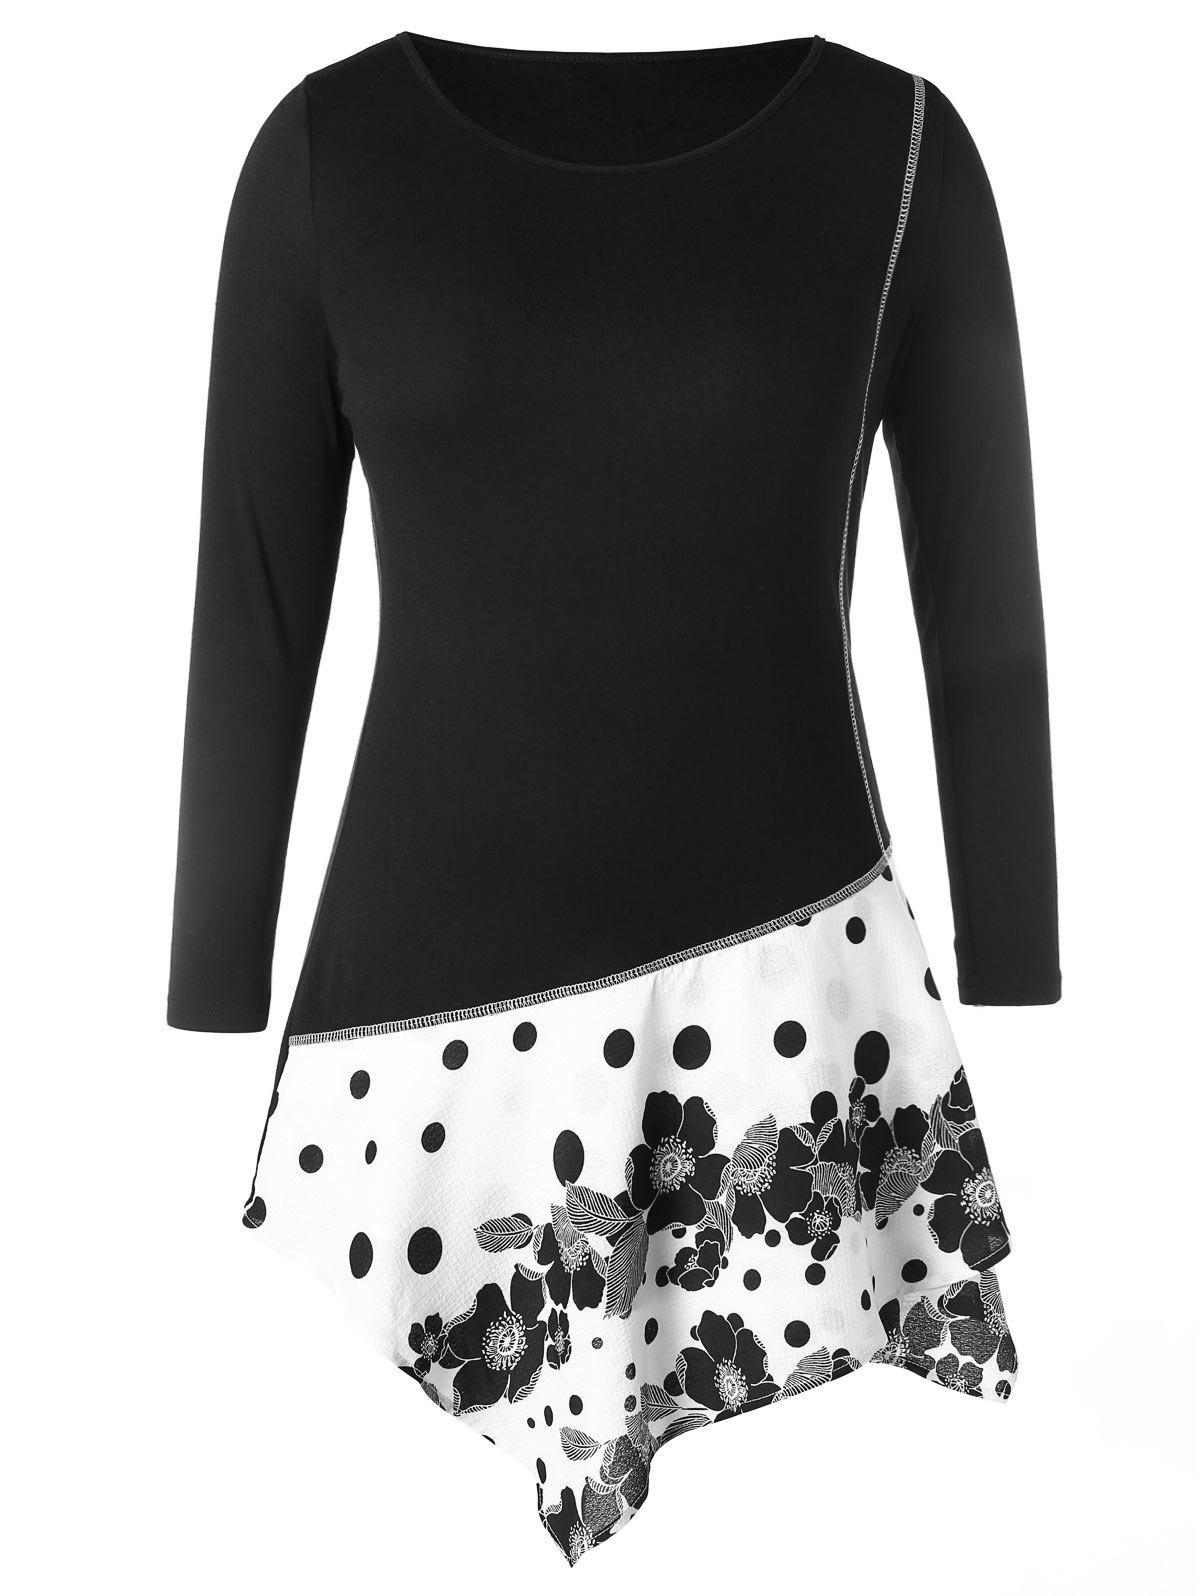 Buy Plus Size Contrast Seam Panel Floral Polka Dot Print T-shirt